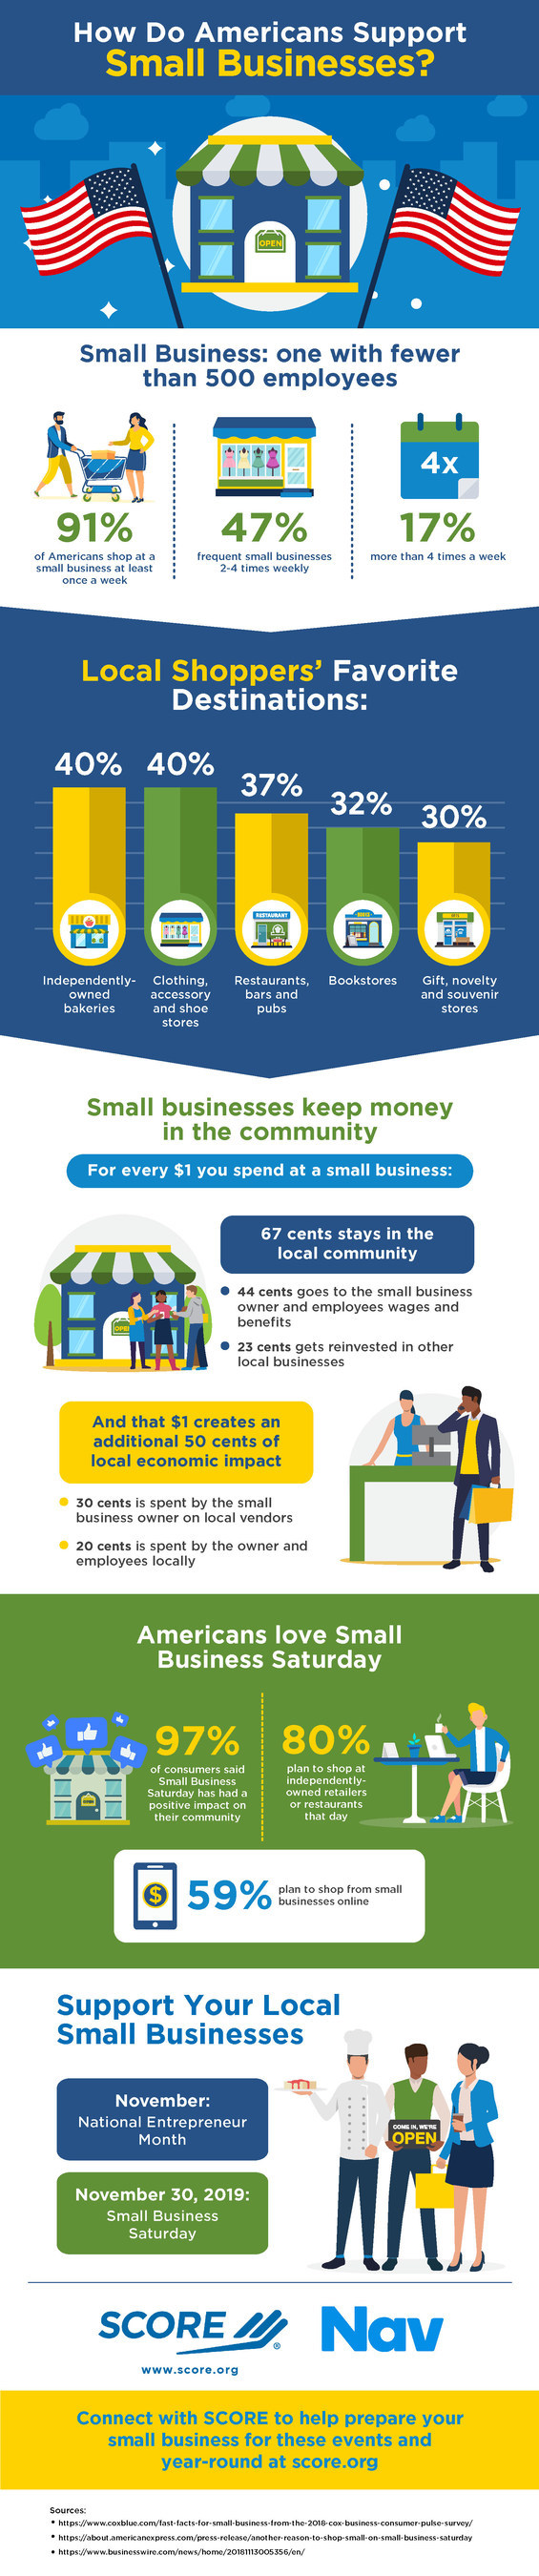 Small businesses keep money on Main Street, according to statistics gathered by SCORE, mentors to America's small businesses, in honor of National Entrepreneurship Month. Of every dollar spent at a small business, 67 cents remain in the local community. Shoppers appreciate this positive community impact, and the majority of Americans are predicted to shop in person or online this Small Business Saturday.